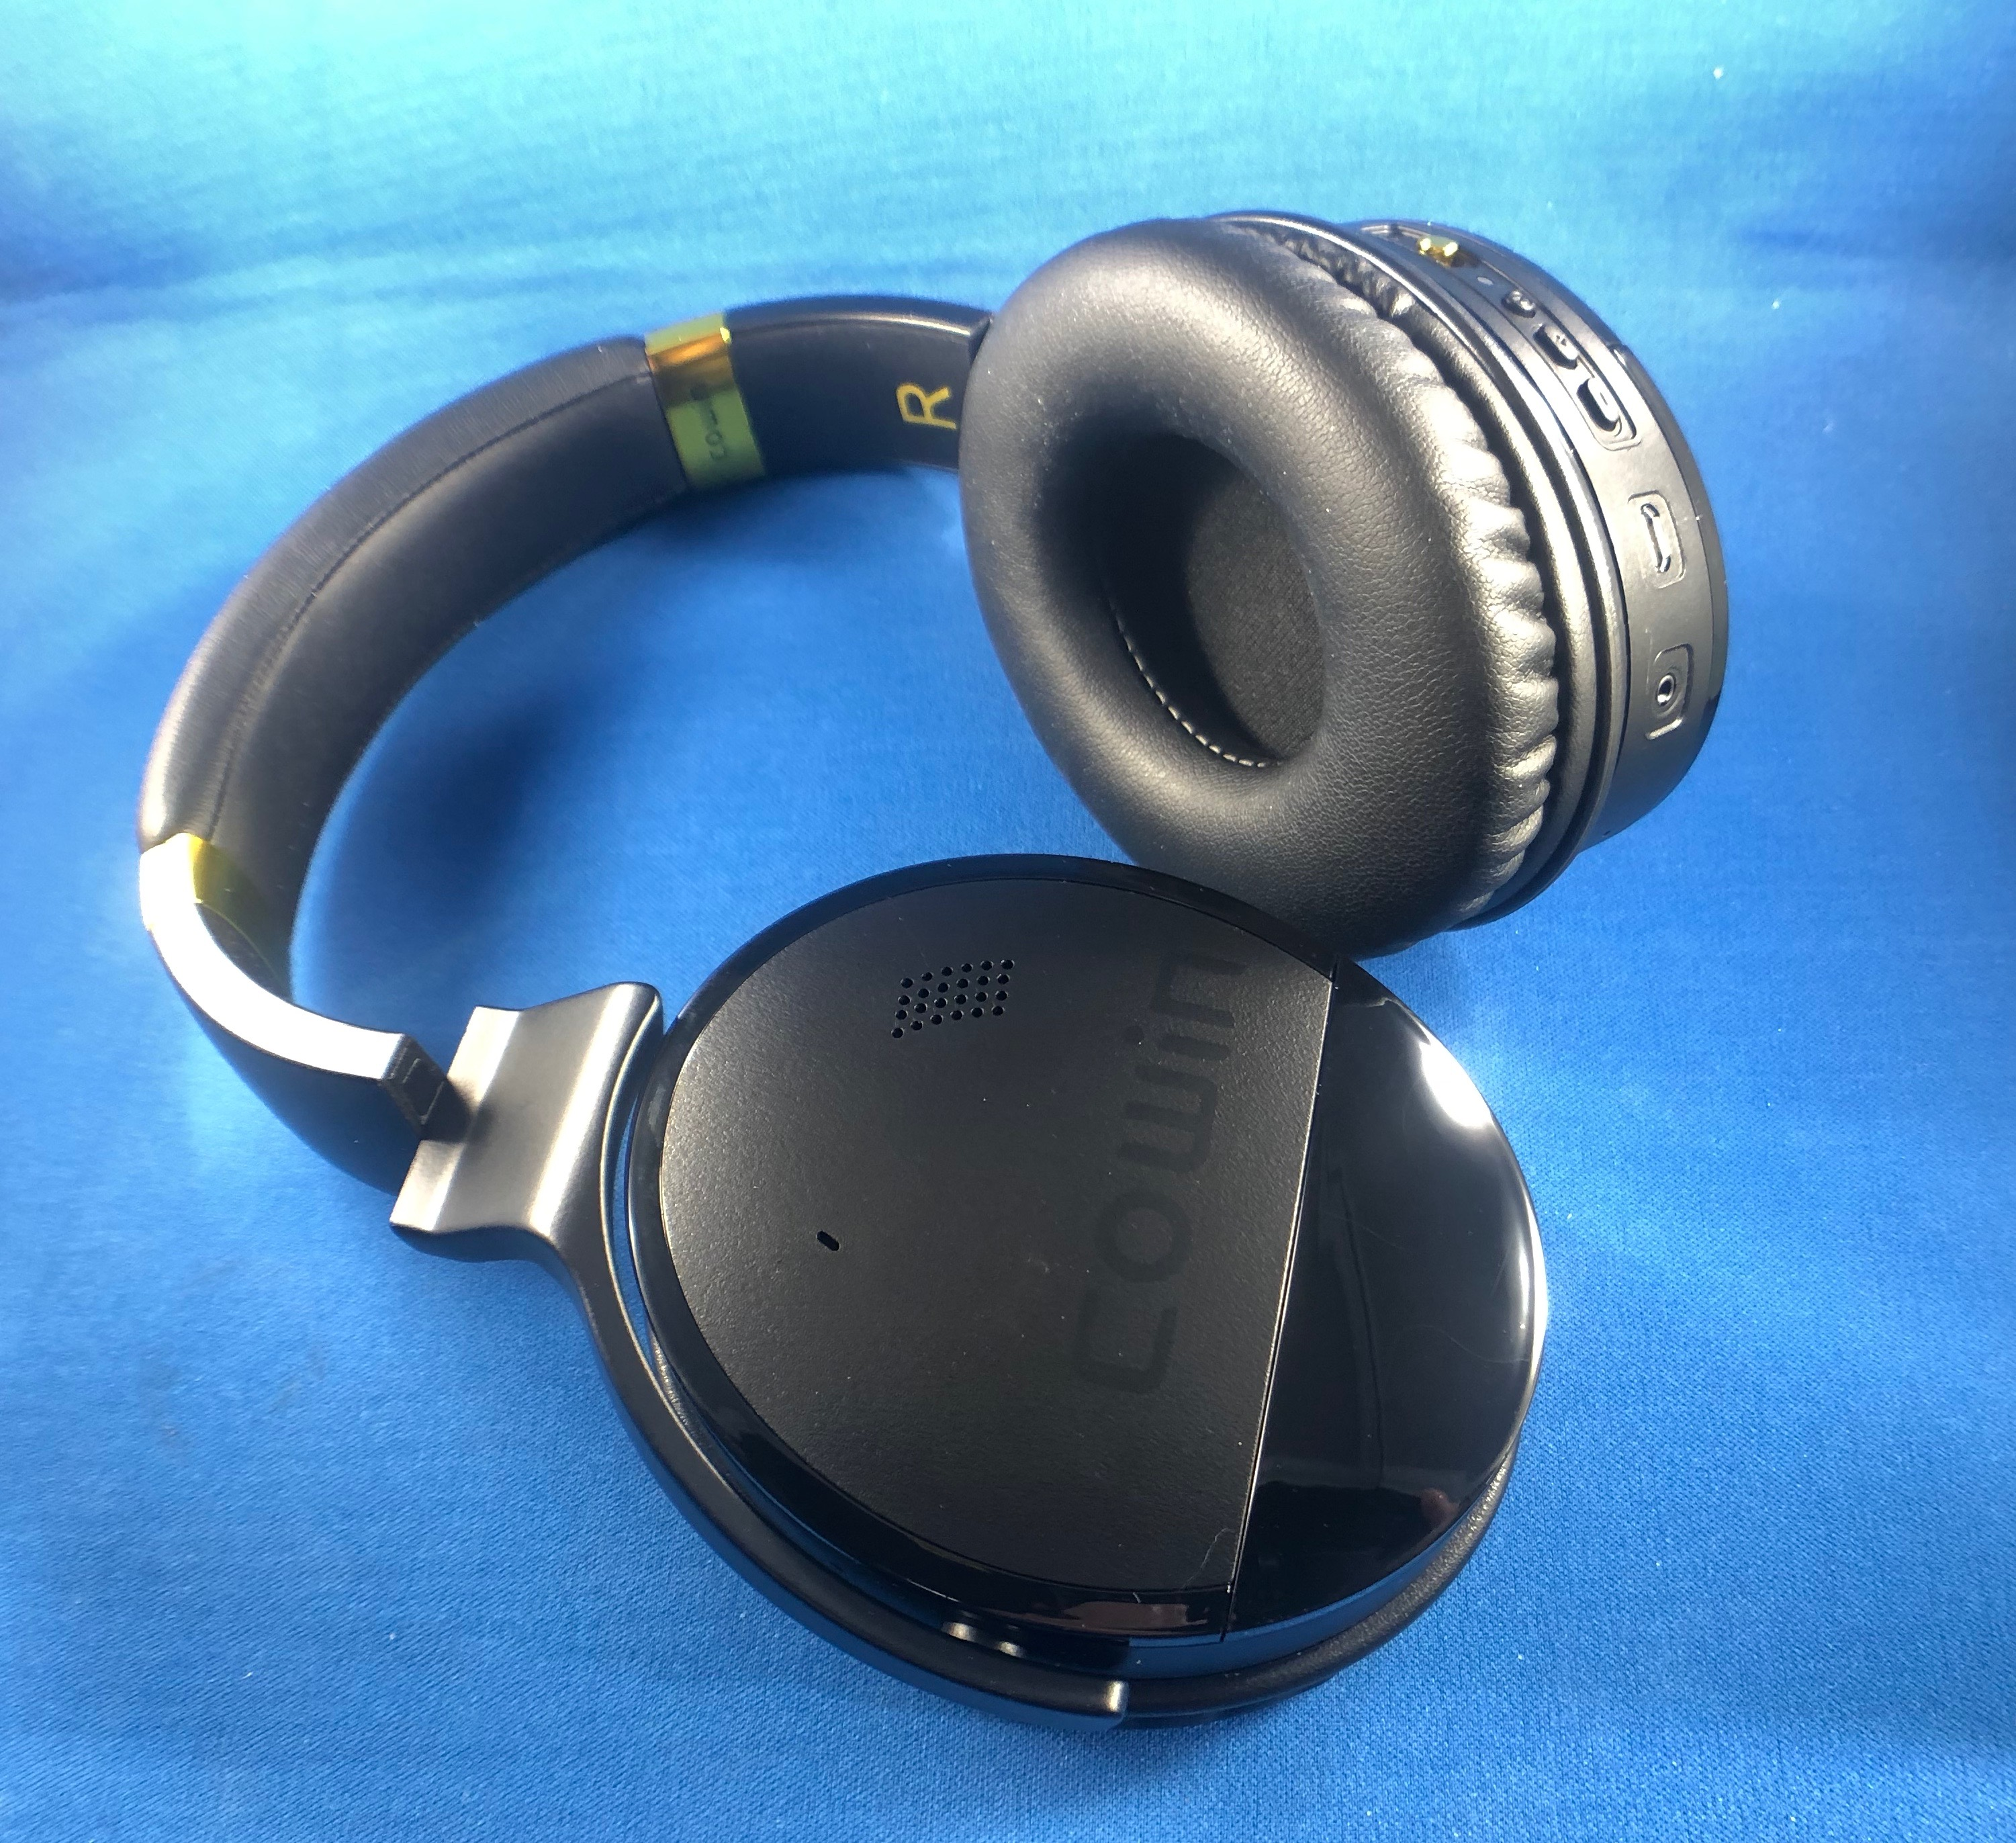 Cowin E8 over-the-ear noise-cancelling headphones review